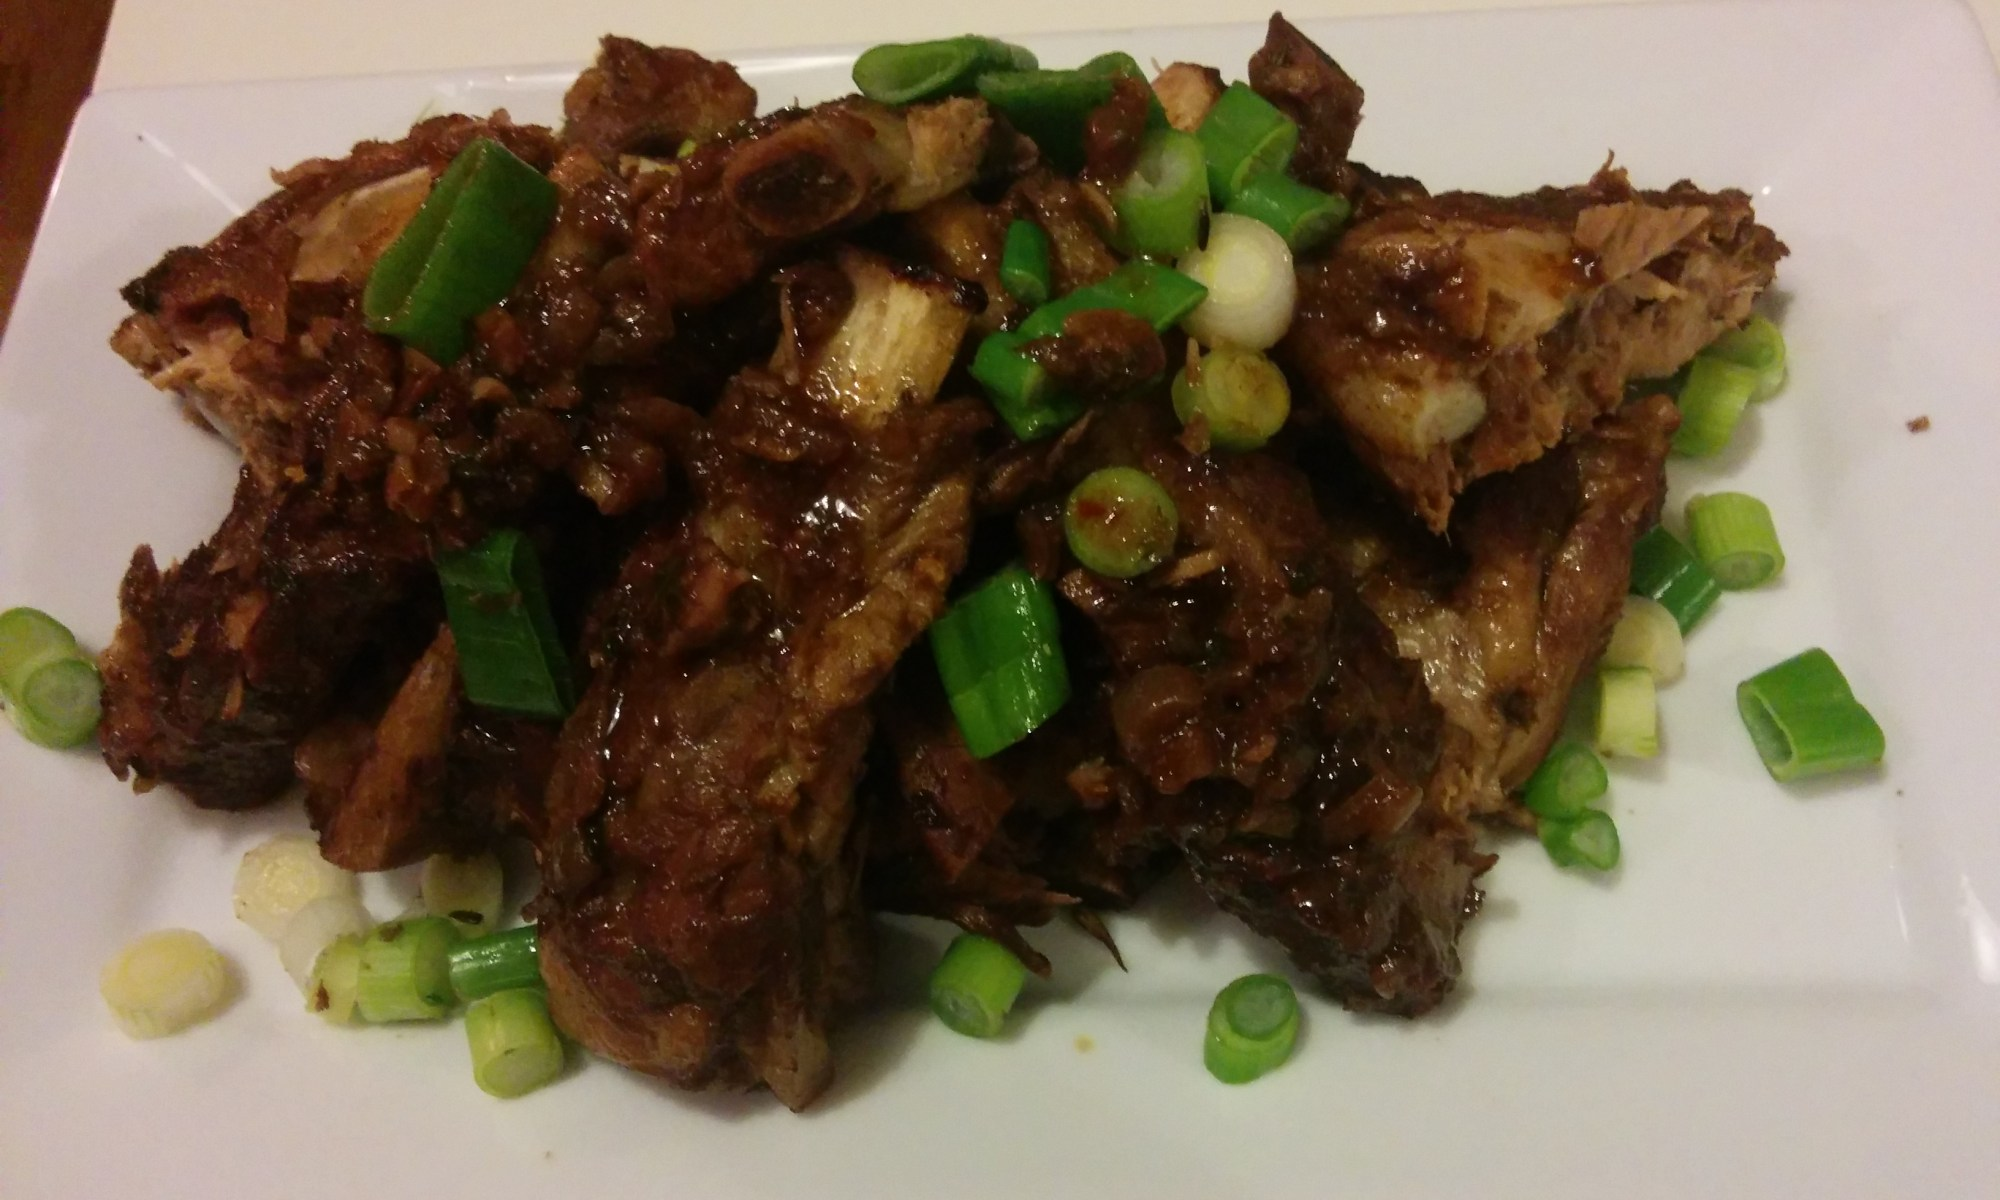 Oven braised spicy pork ribs